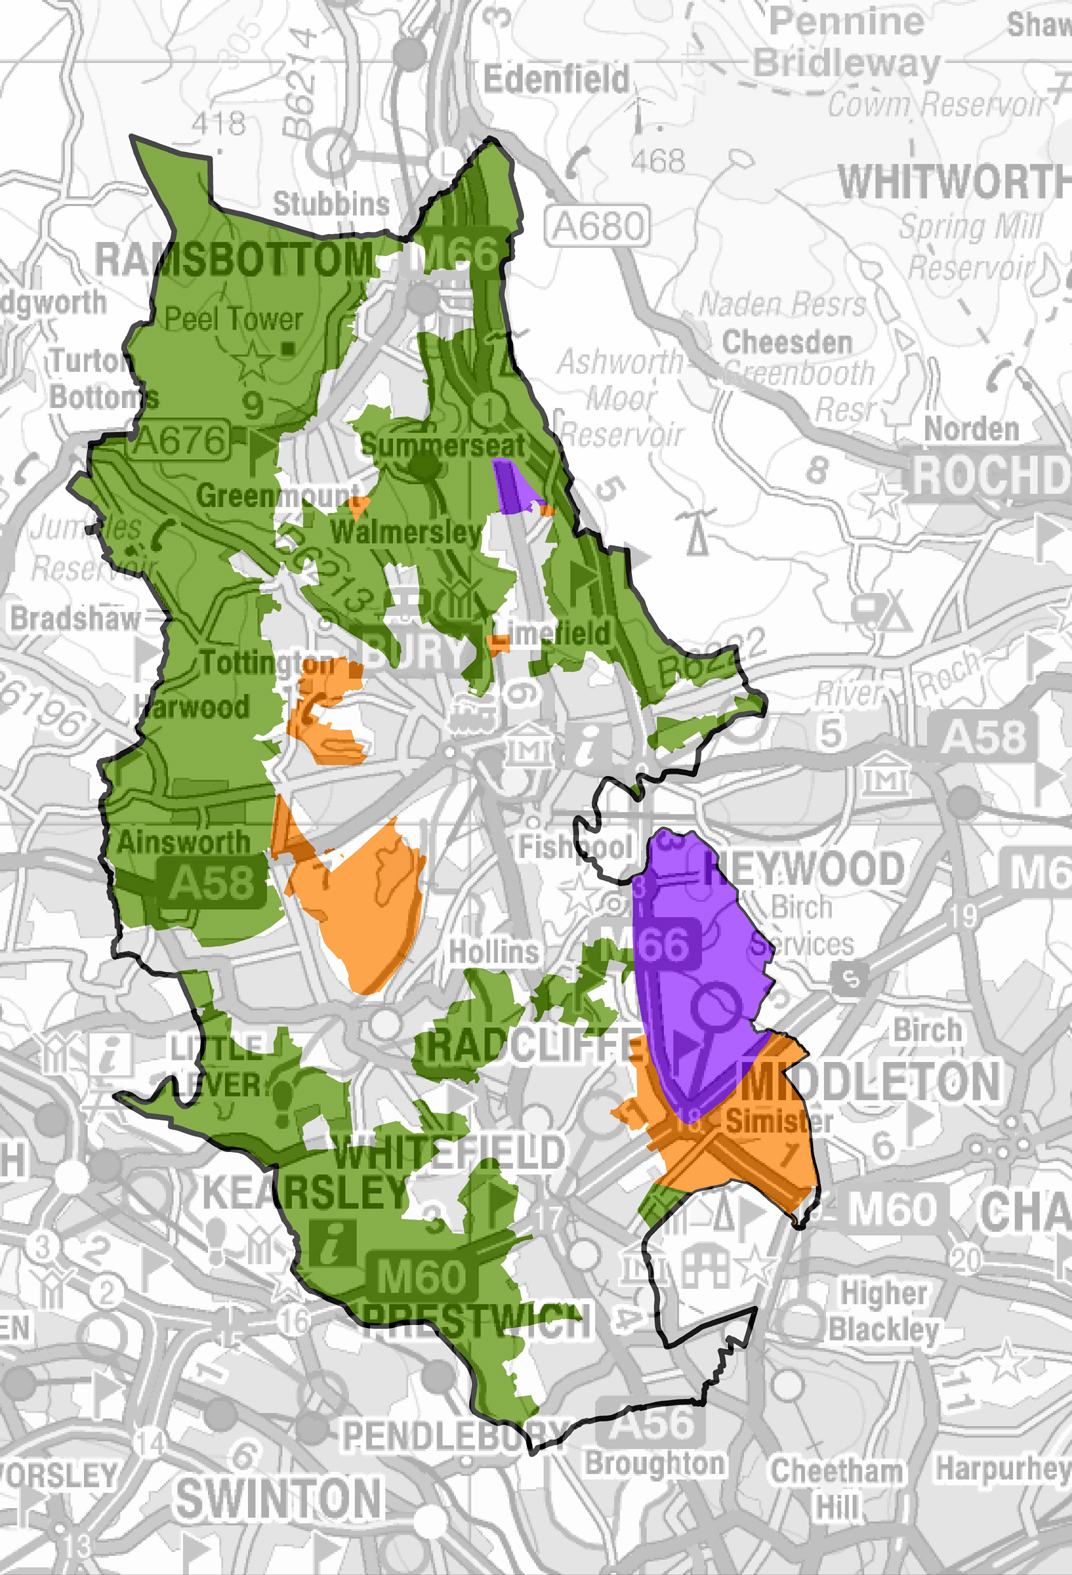 Proposed strategic site allocations for the Greater Manchester Spatial Framework.